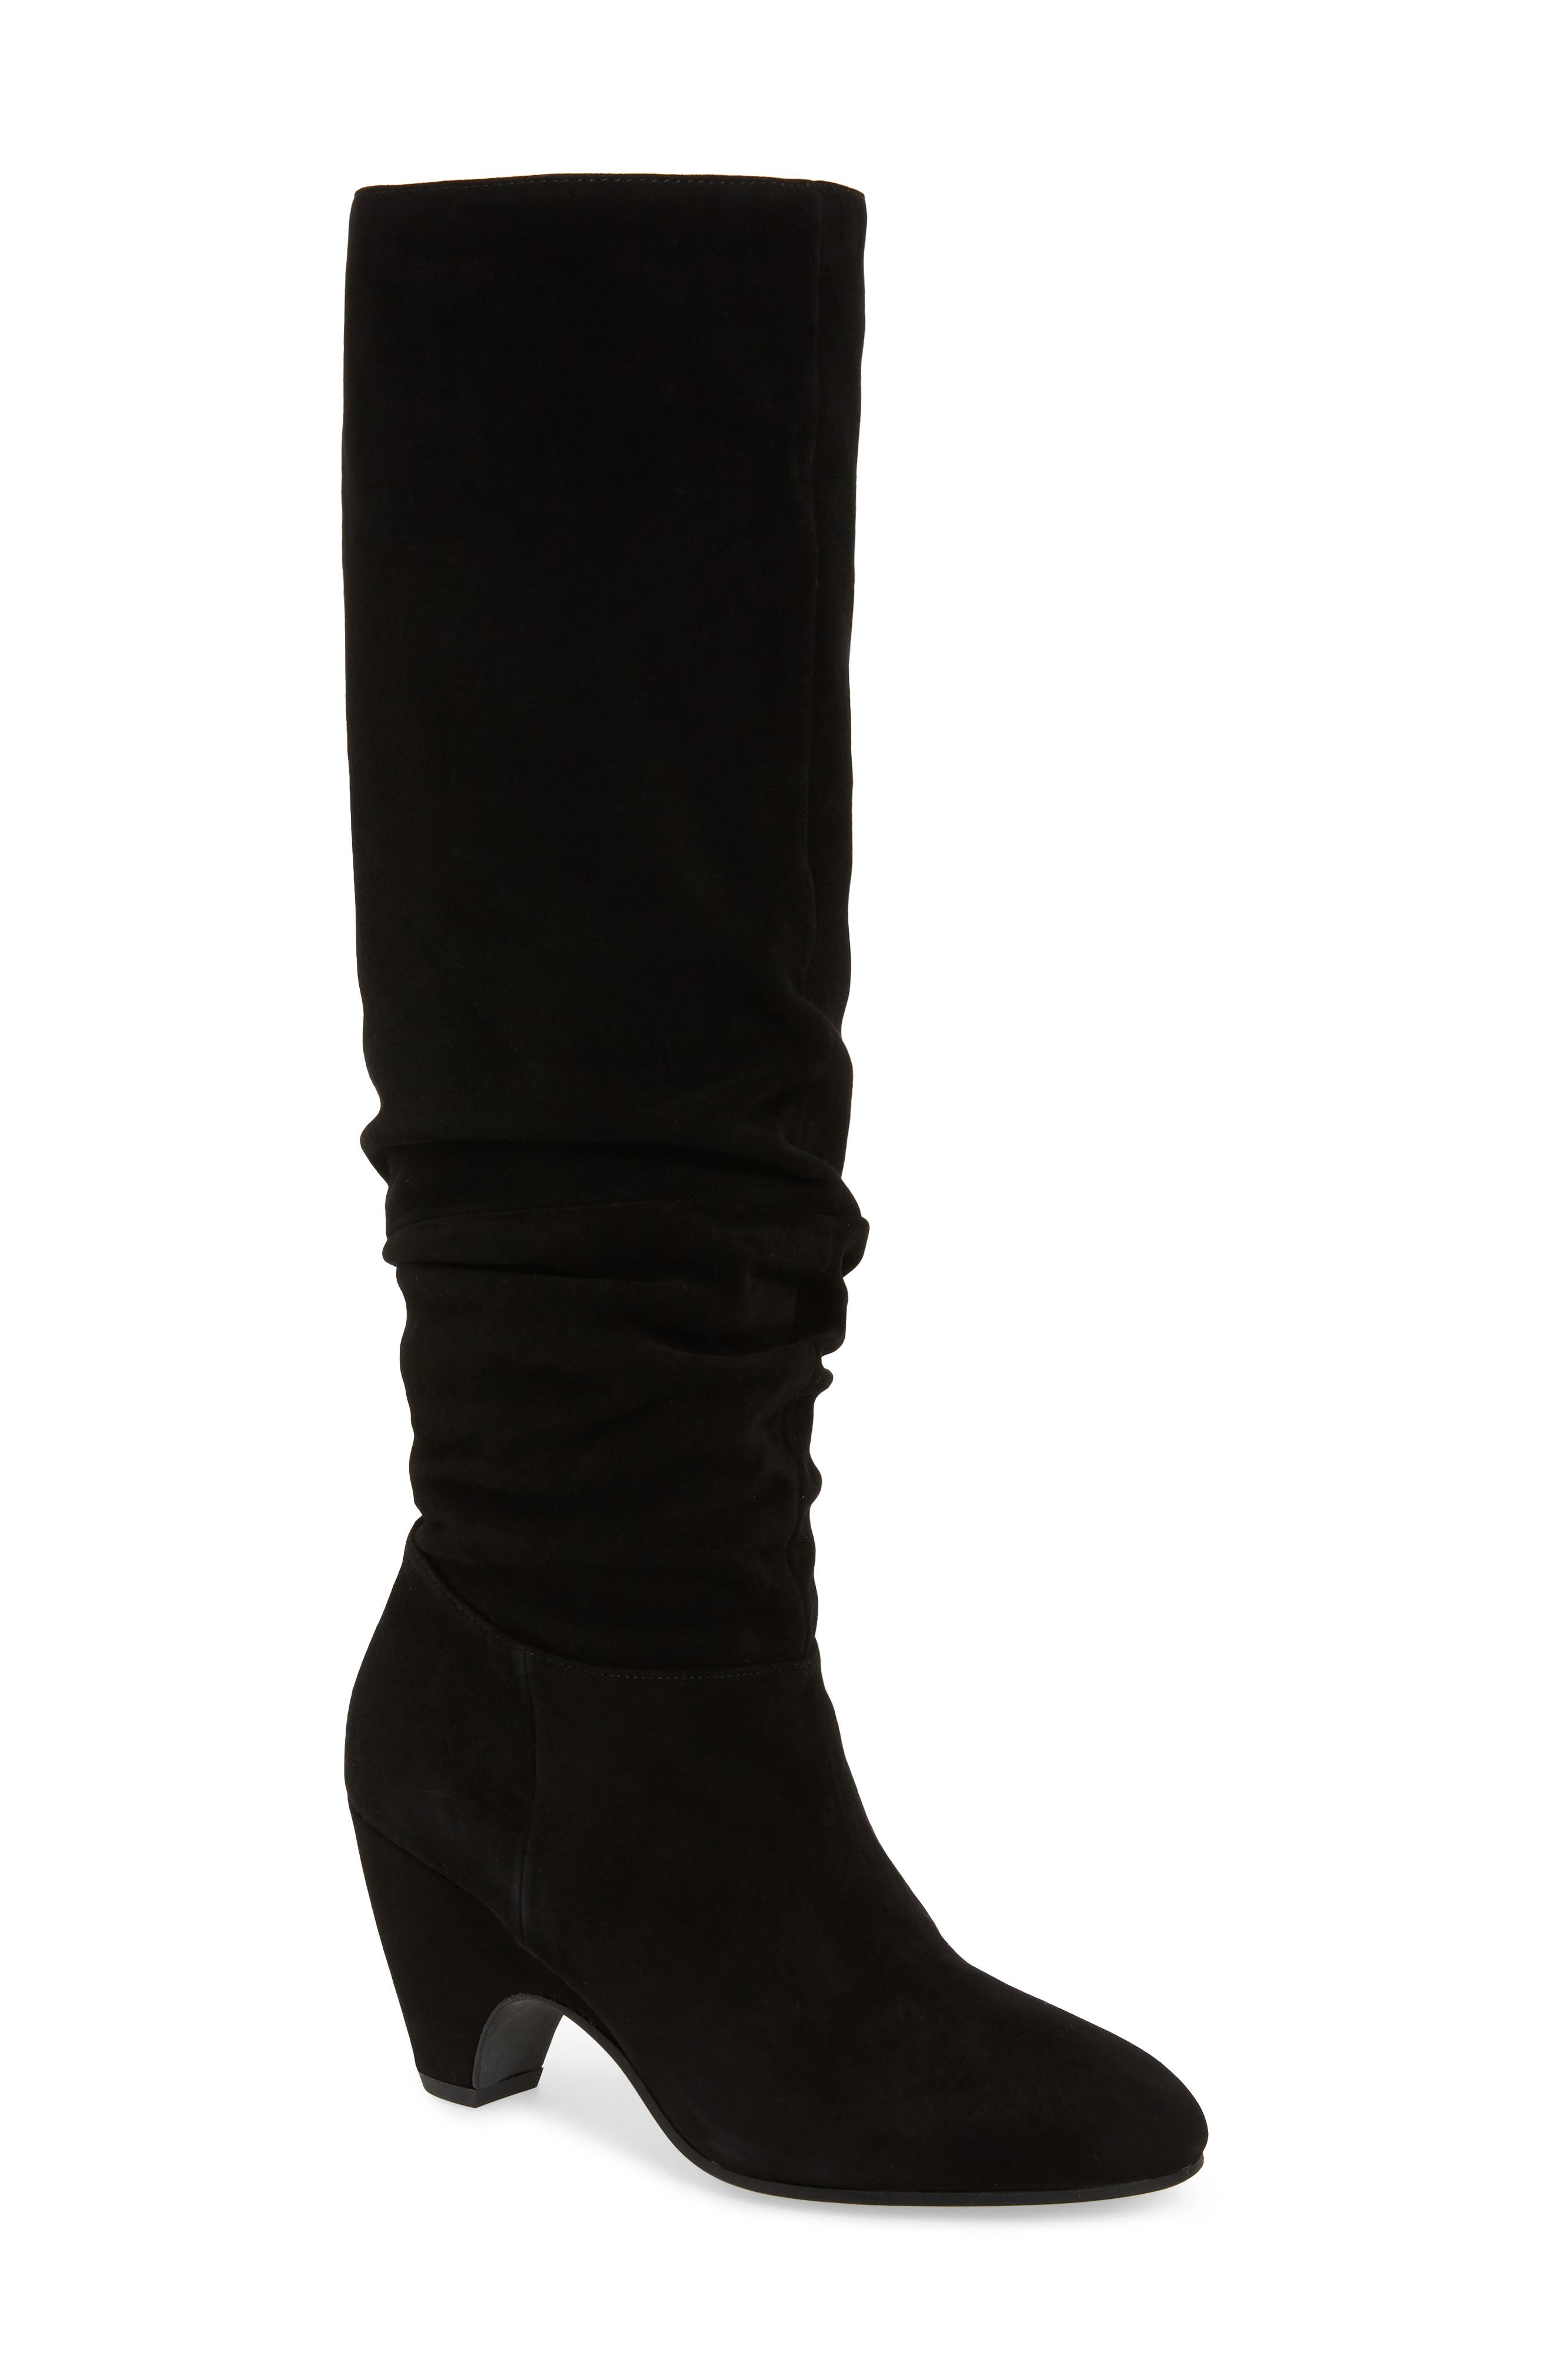 Ditto Knee High Boot,                             Main thumbnail 1, color,                             BLACK SUEDE